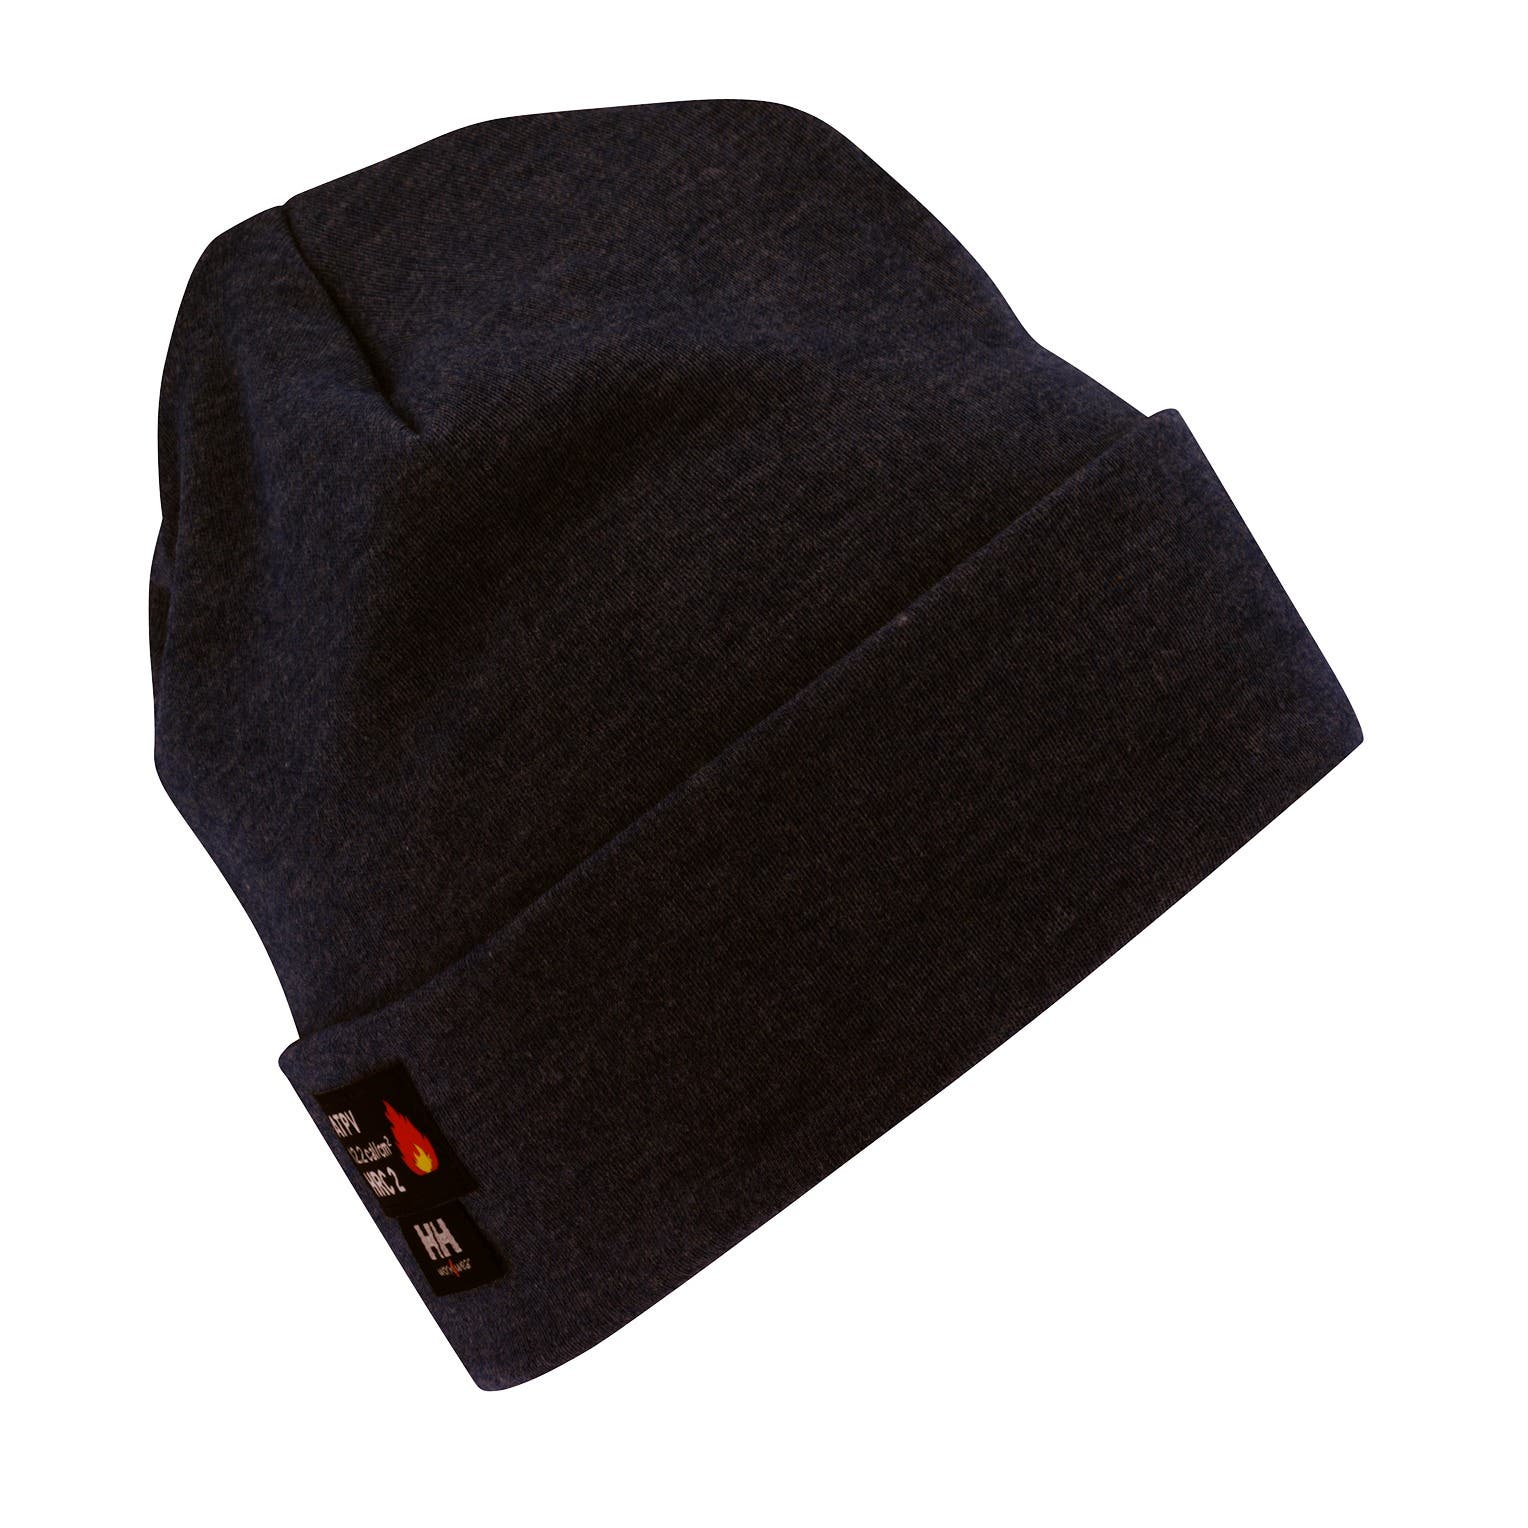 Helly Hansen Unisex Fargo Flame Retardant Tuque Hat in Black from the front